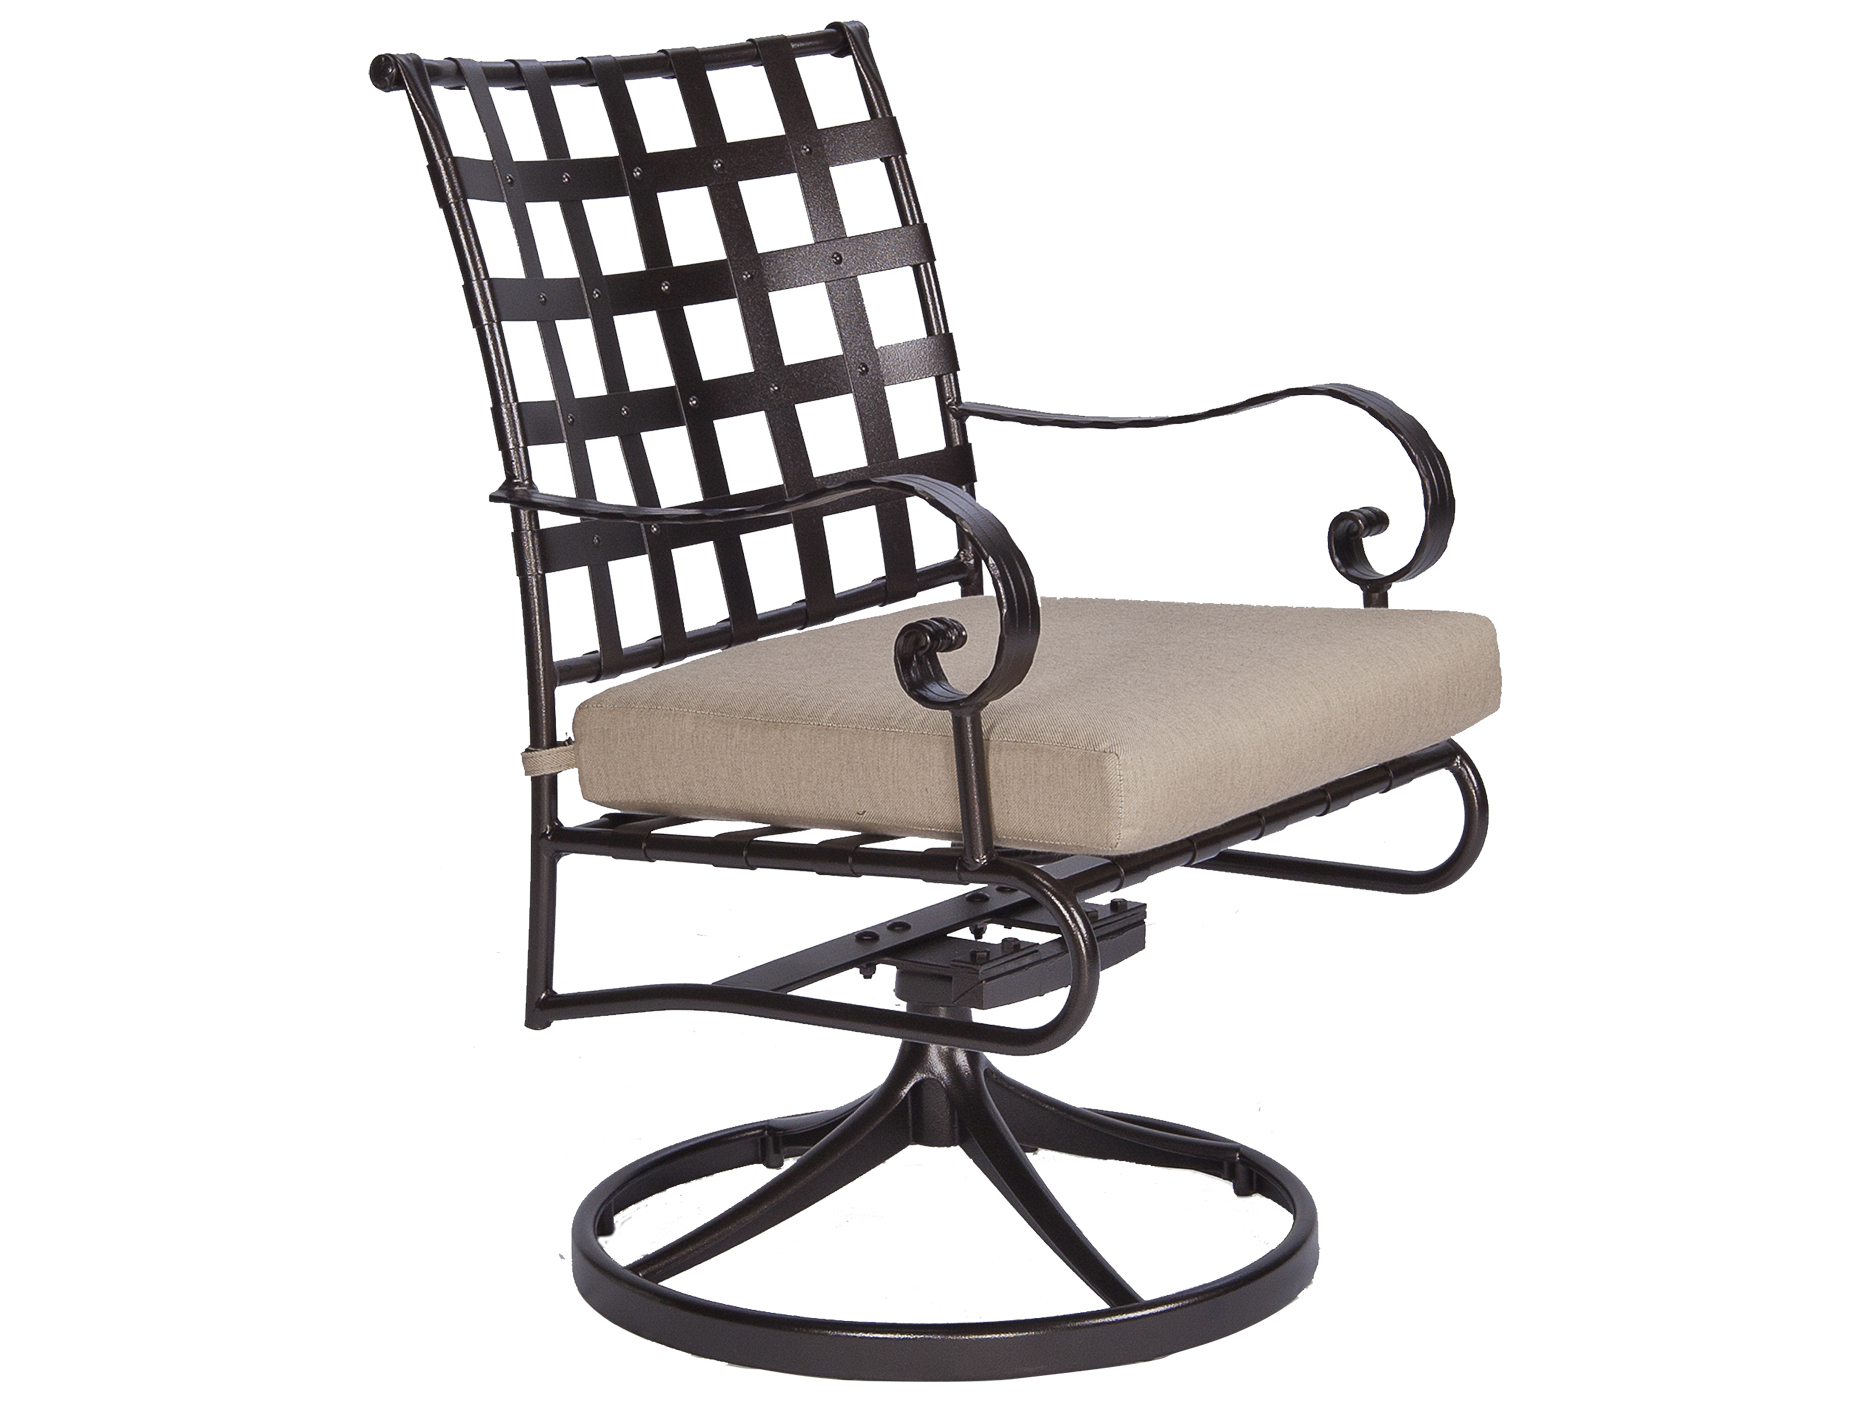 ... Classico-Wide Arms Wrought Iron Swivel Rocker Dining Chair  953-SRW